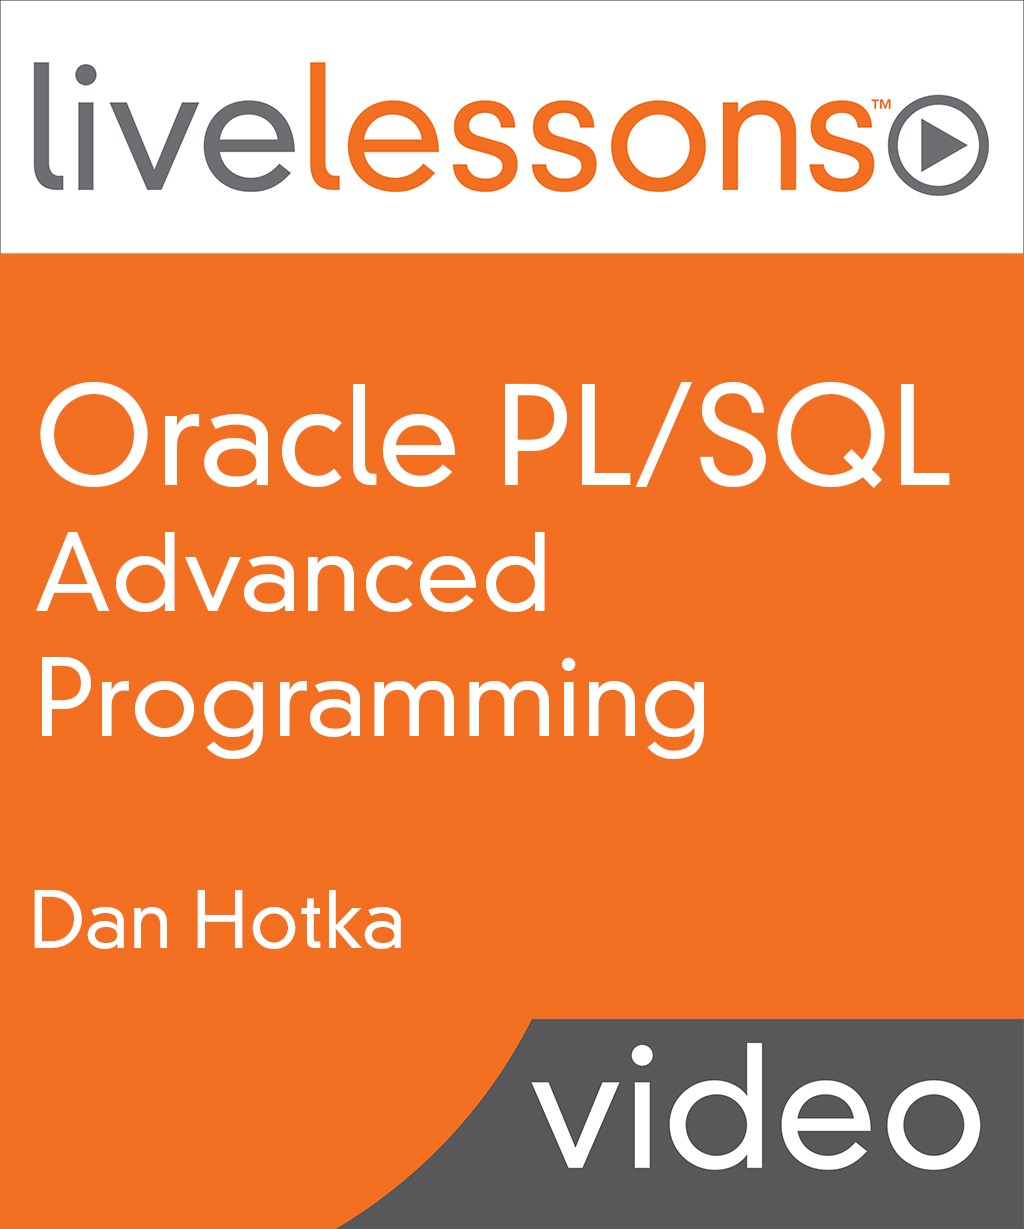 Oracle PL/SQL Advanced Programming LiveLessons